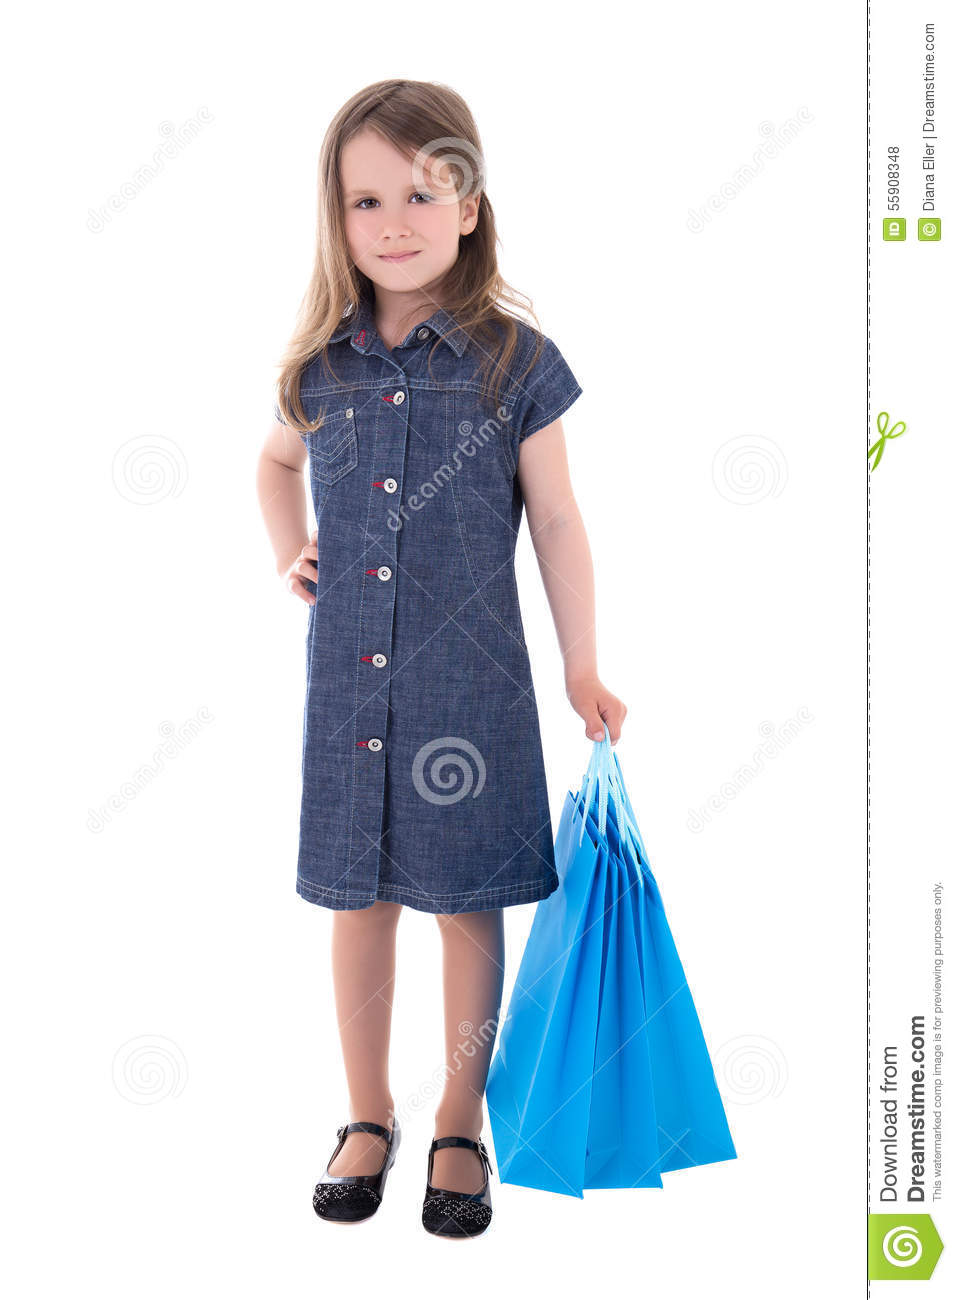 505f2c7ca1f Cute Little Girl In Denim Dress With Shopping Bags Isolated On W ...